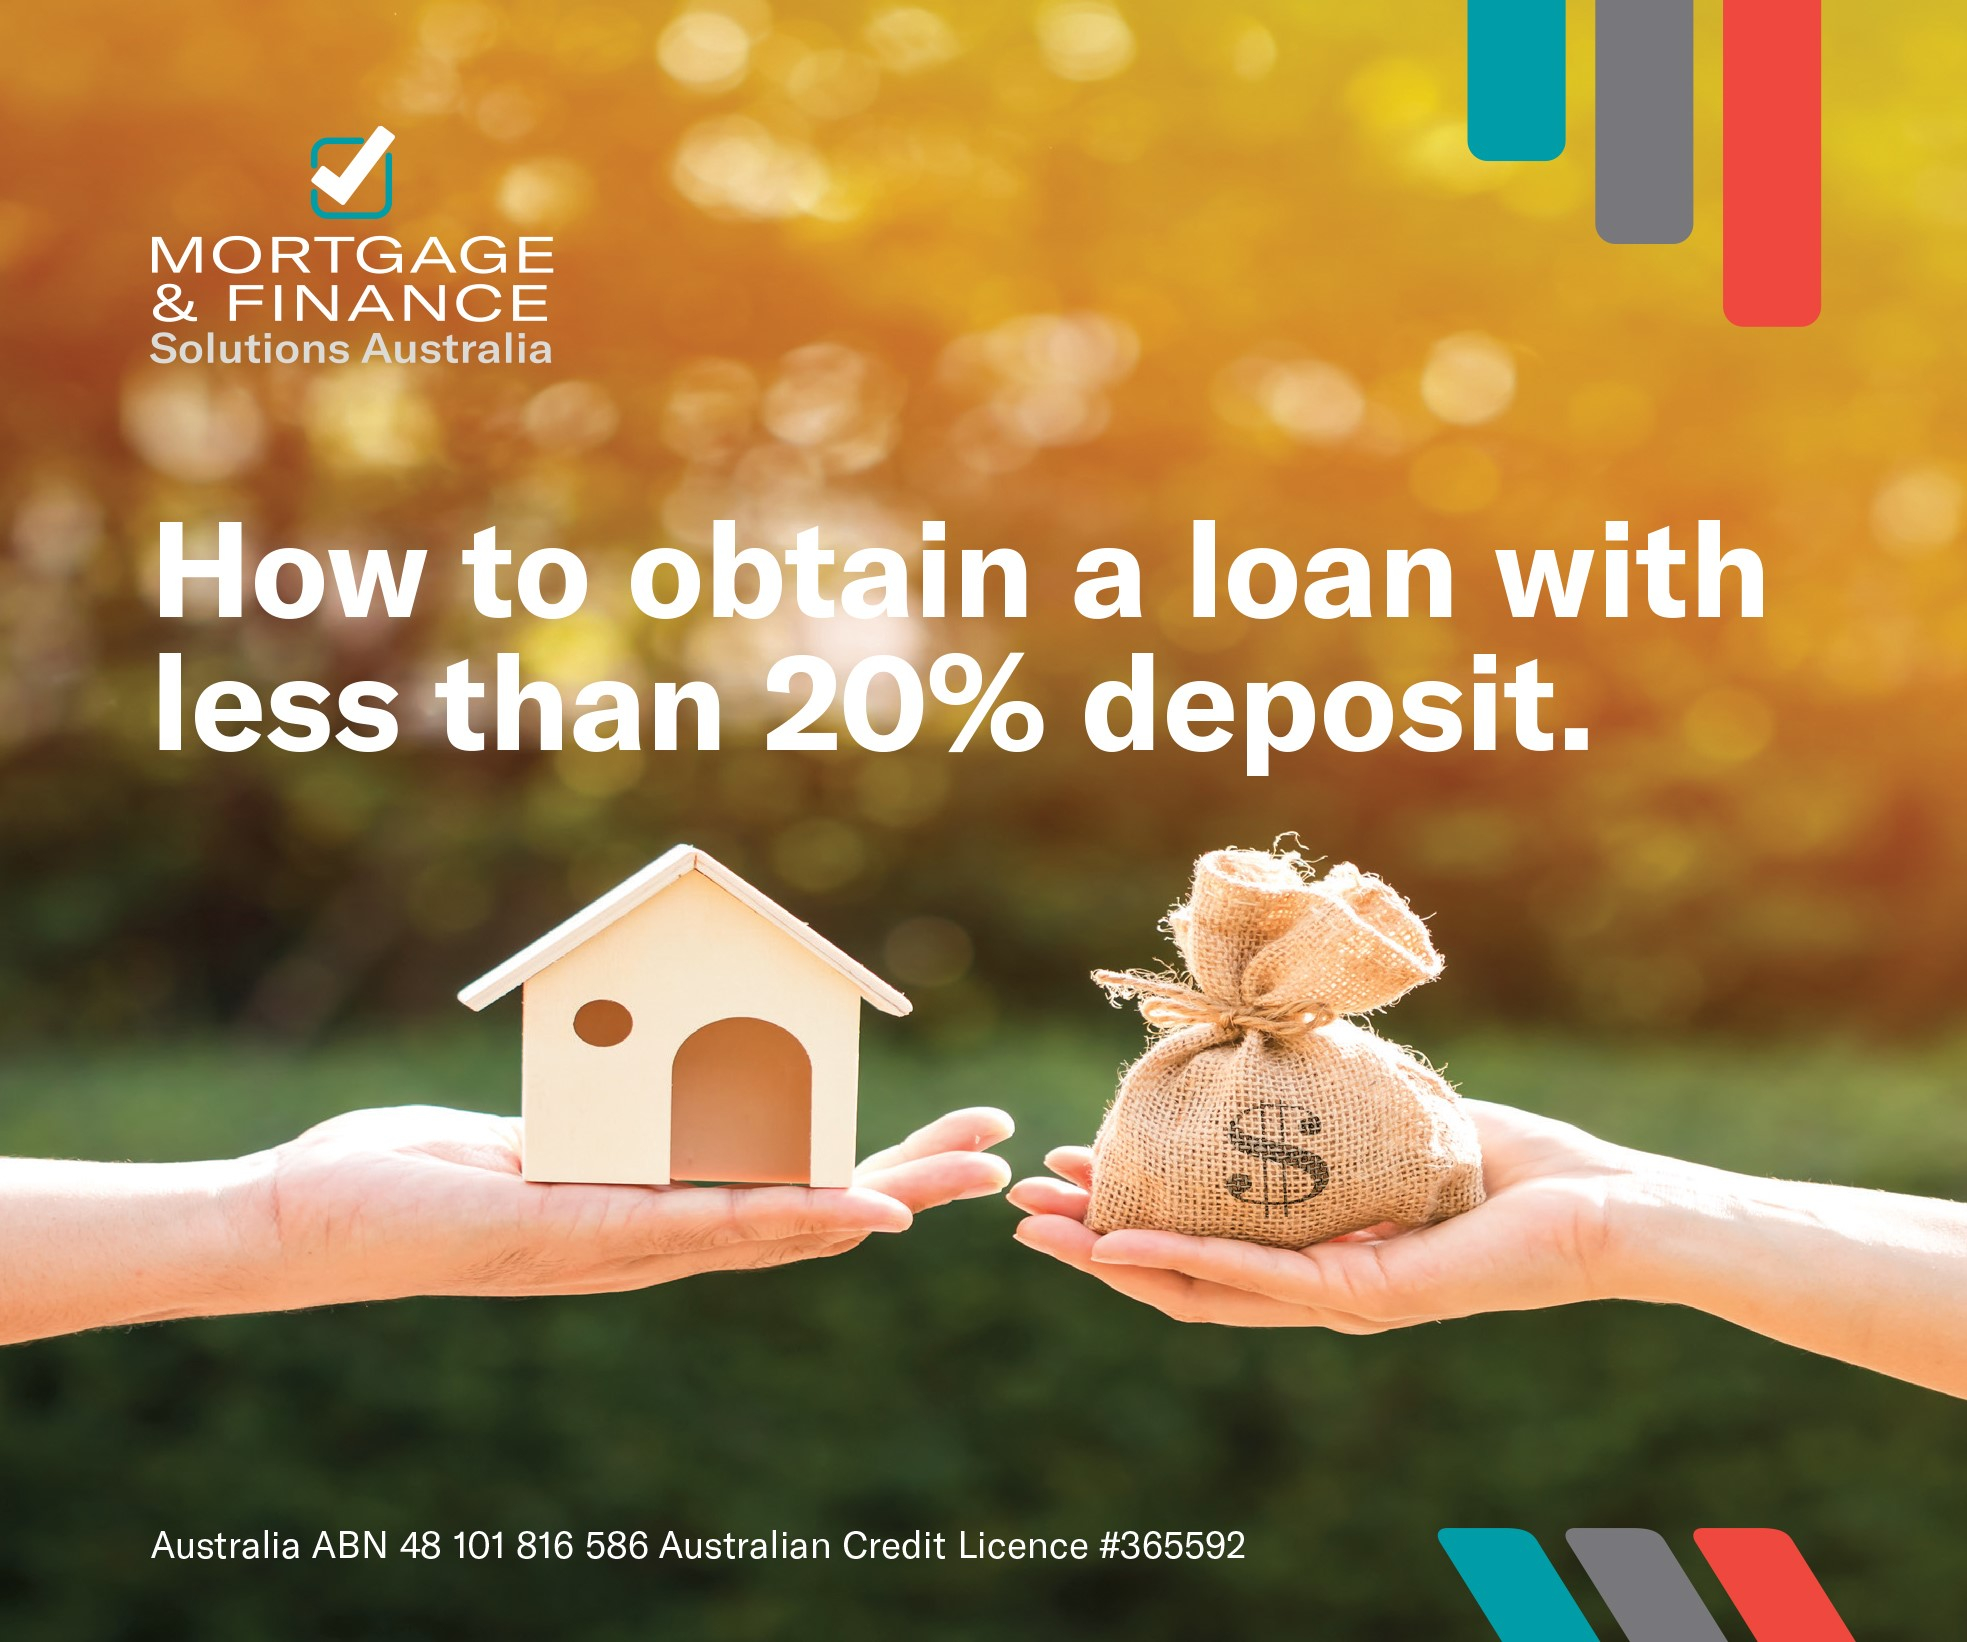 How to obtain a loan with less than 20% deposit?